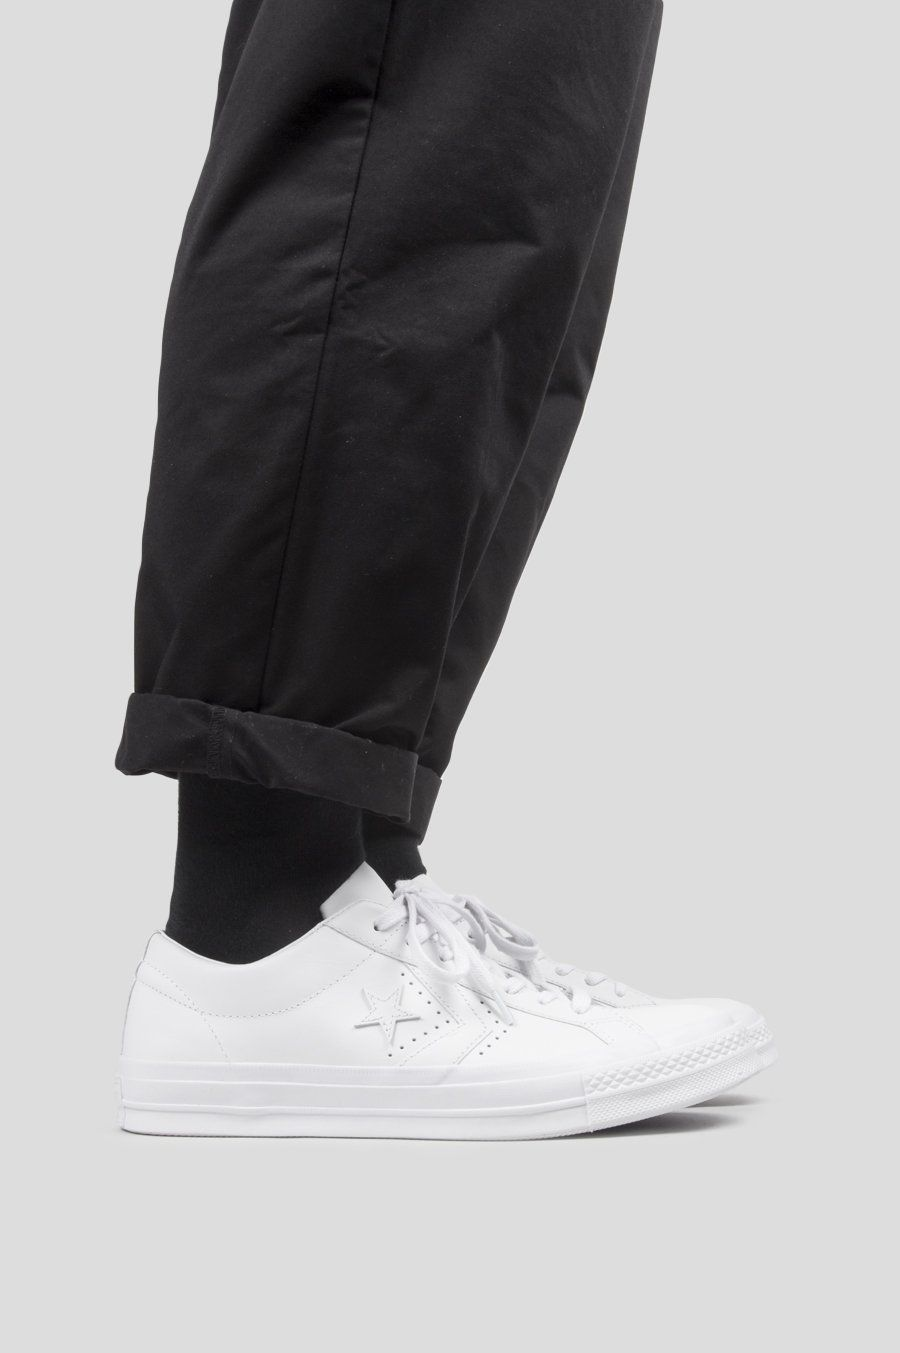 official photos 3f49e 0a16f CONVERSE X ENGINEERED GARMENTS ONE STAR OX WHITE